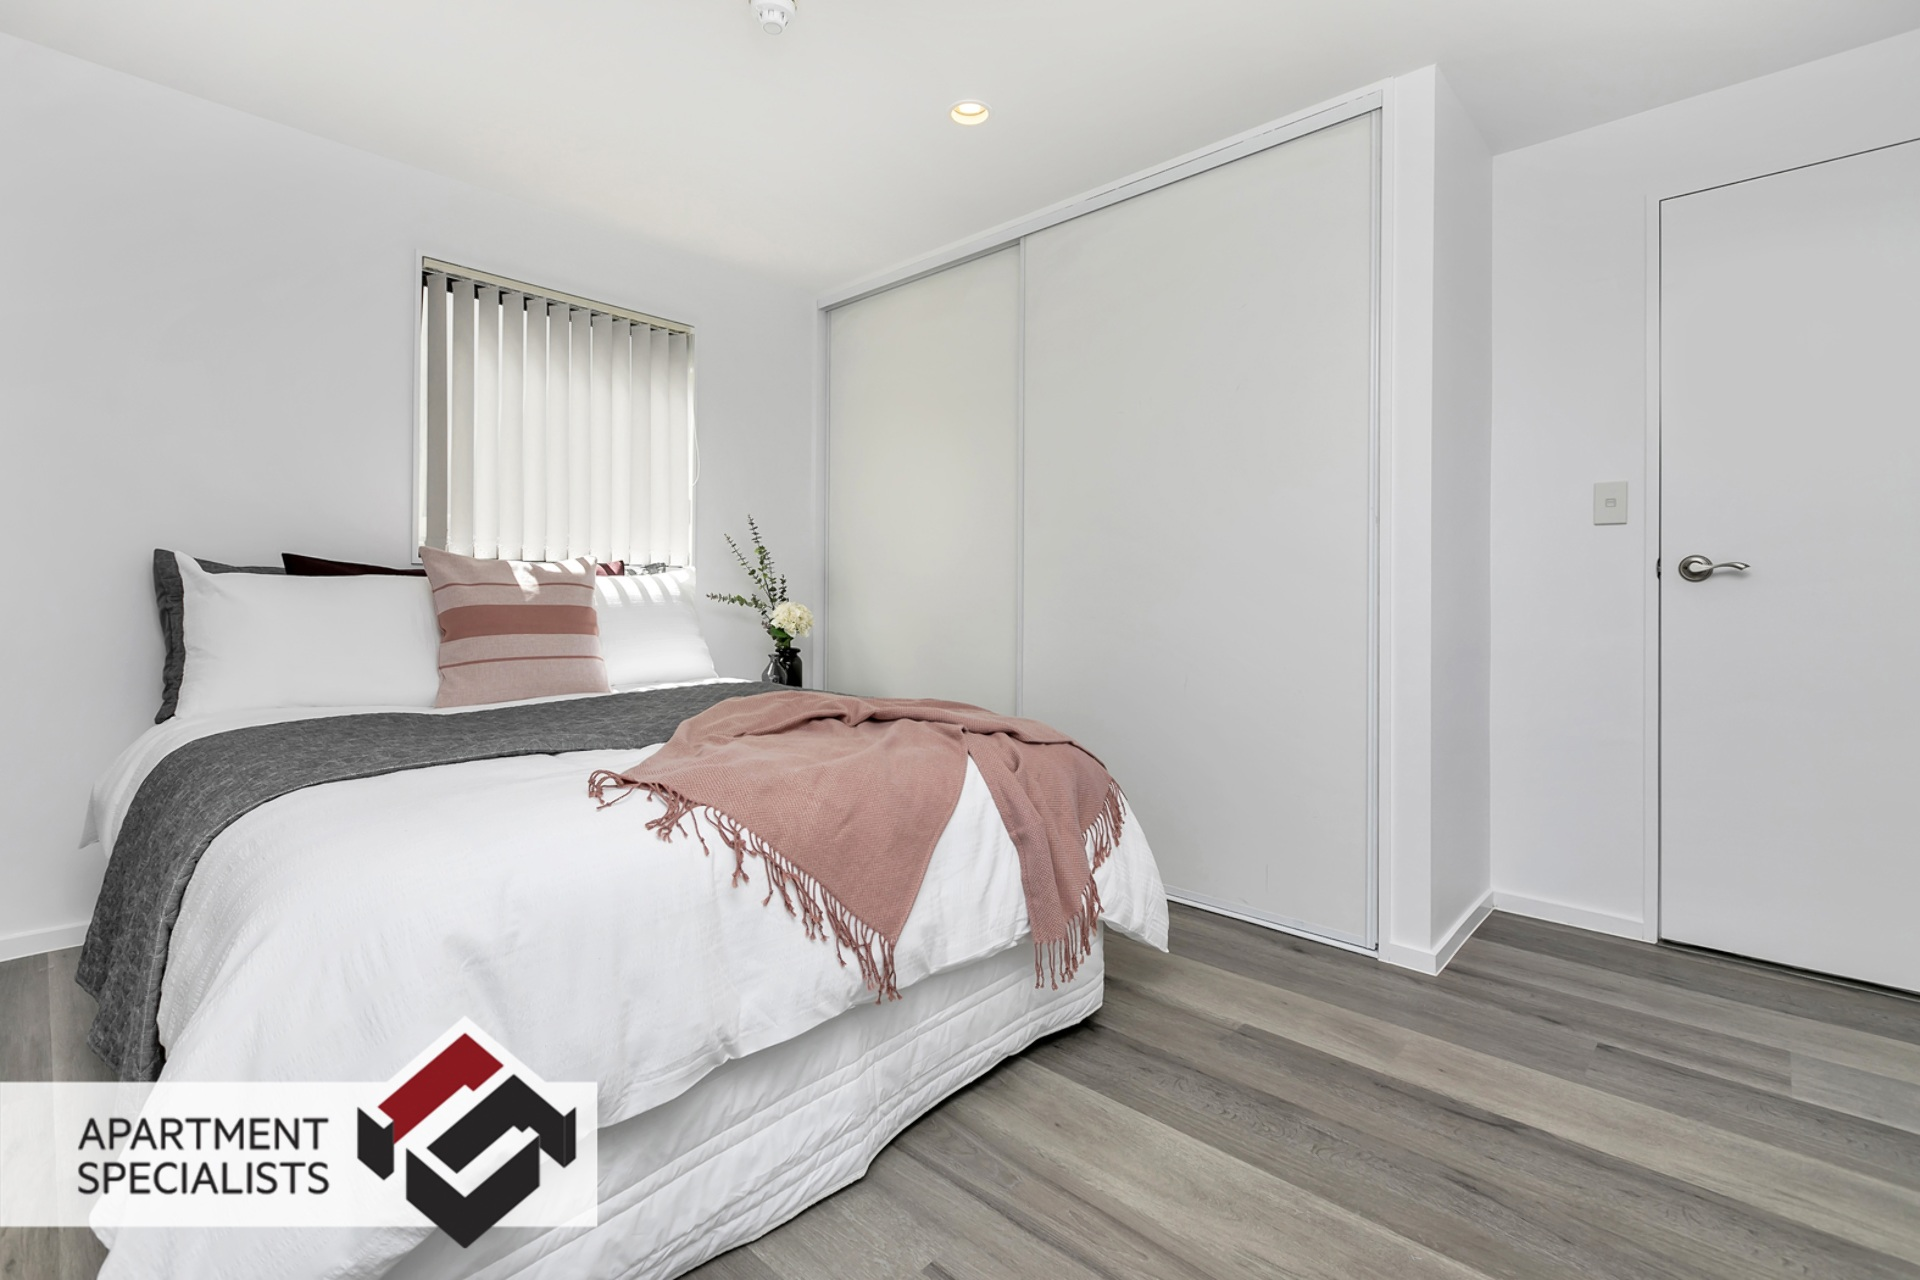 6 | 20 Upper Queen Street, City Centre | Apartment Specialists